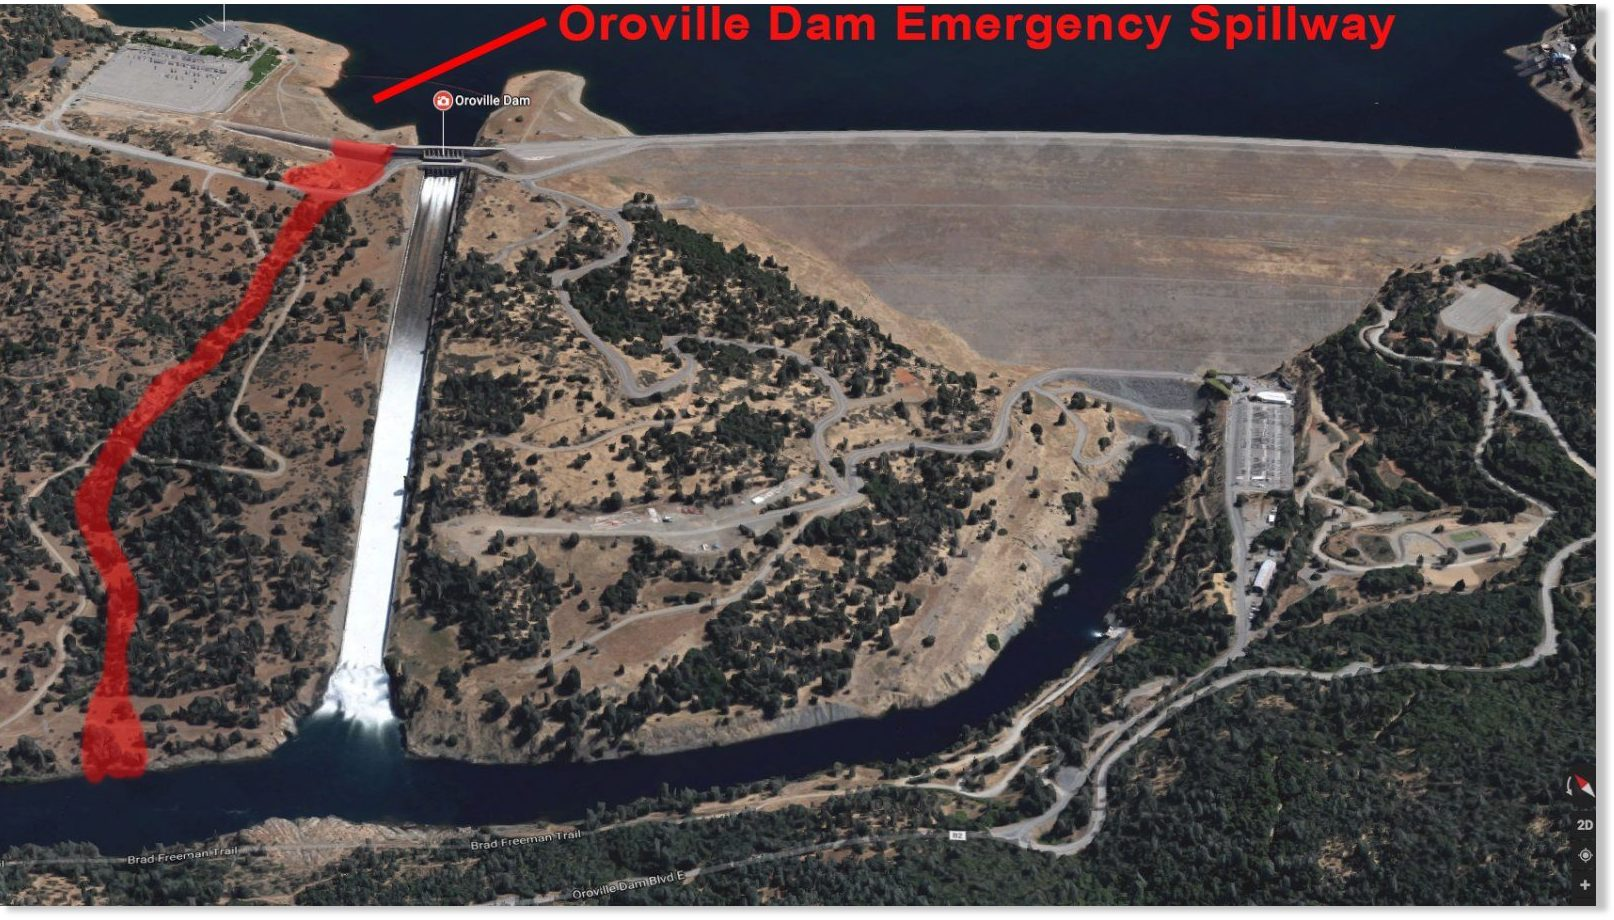 Basics moreover 342454 Update Oroville Dam Overtops Government Still Refuses To Order Evacuation Preparations also 3215 besides Balsa wood model airplane kits YAK 54 65 rc gasoline engine rc airplane also Watch. on tube radio repair